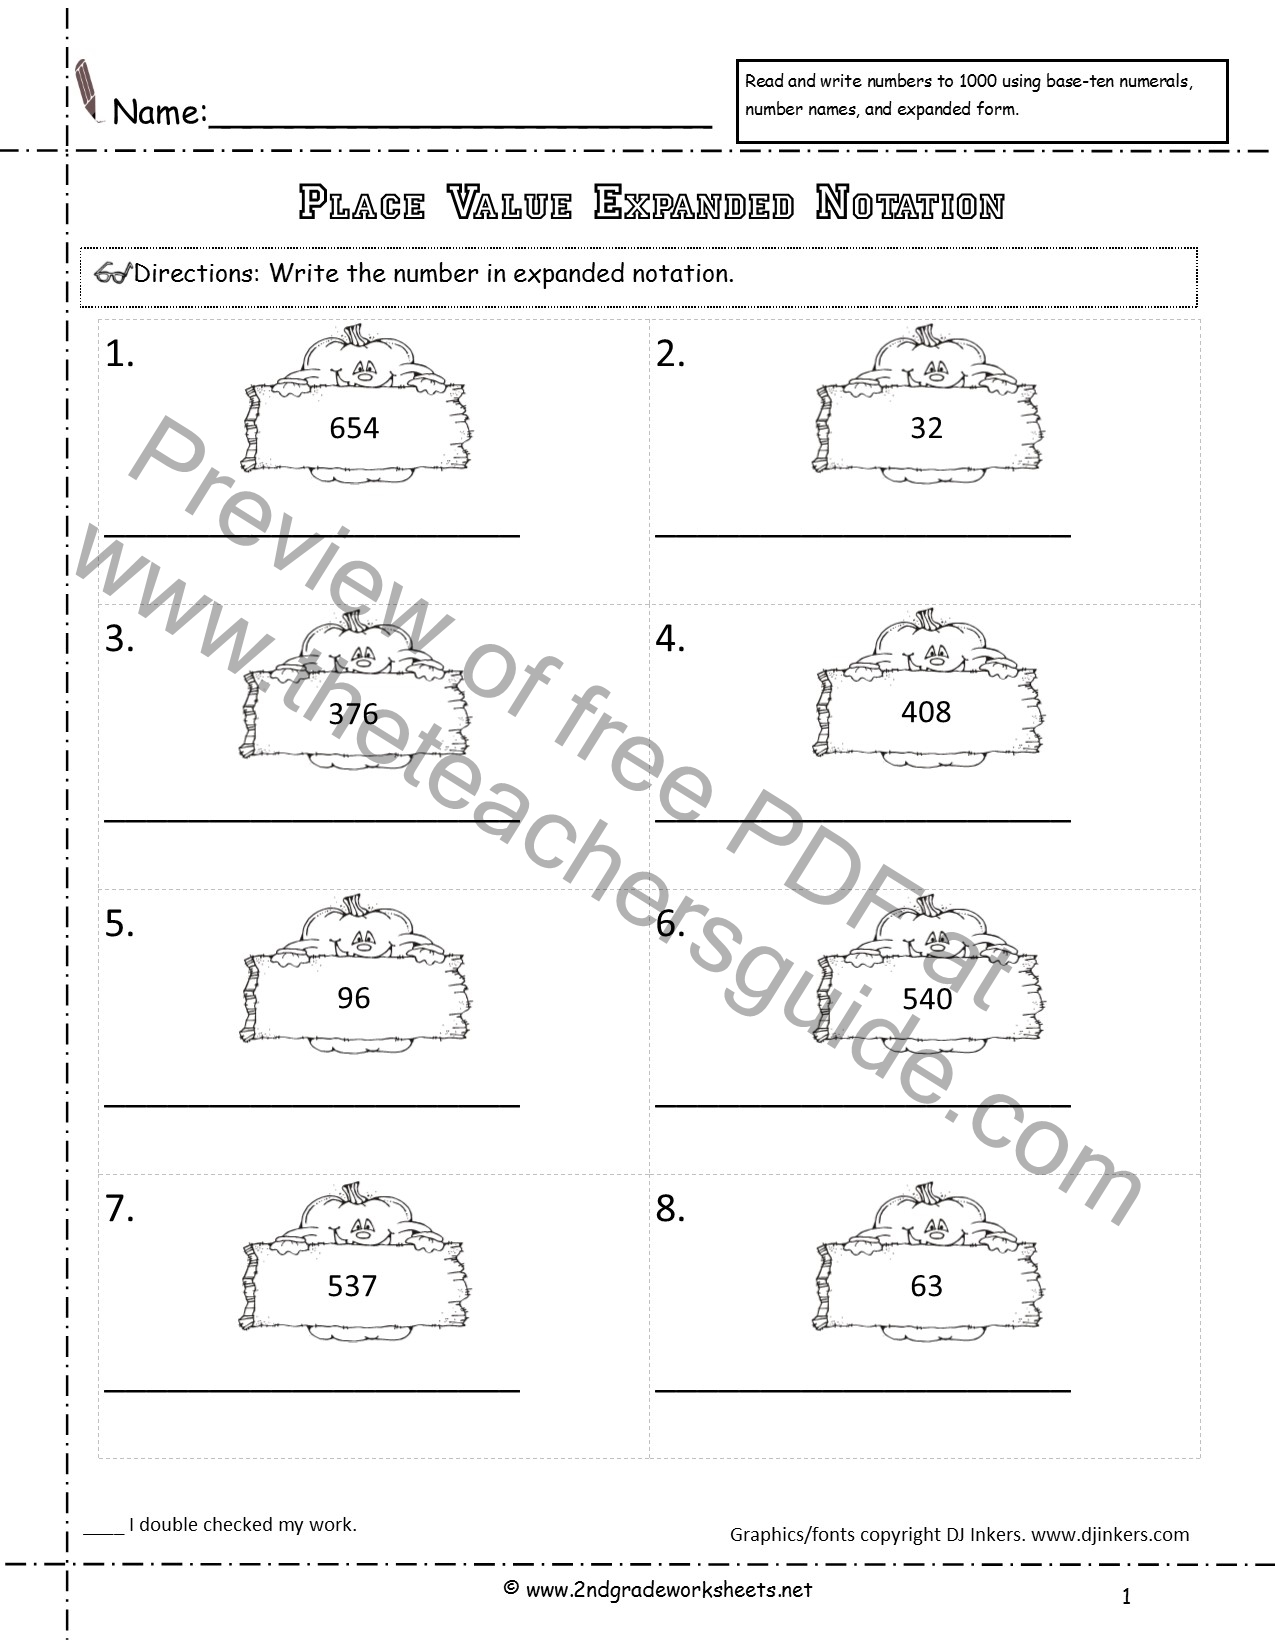 Uncategorized Expanded Notation Worksheets halloween printouts from the teachers guide numbers in expanded notation